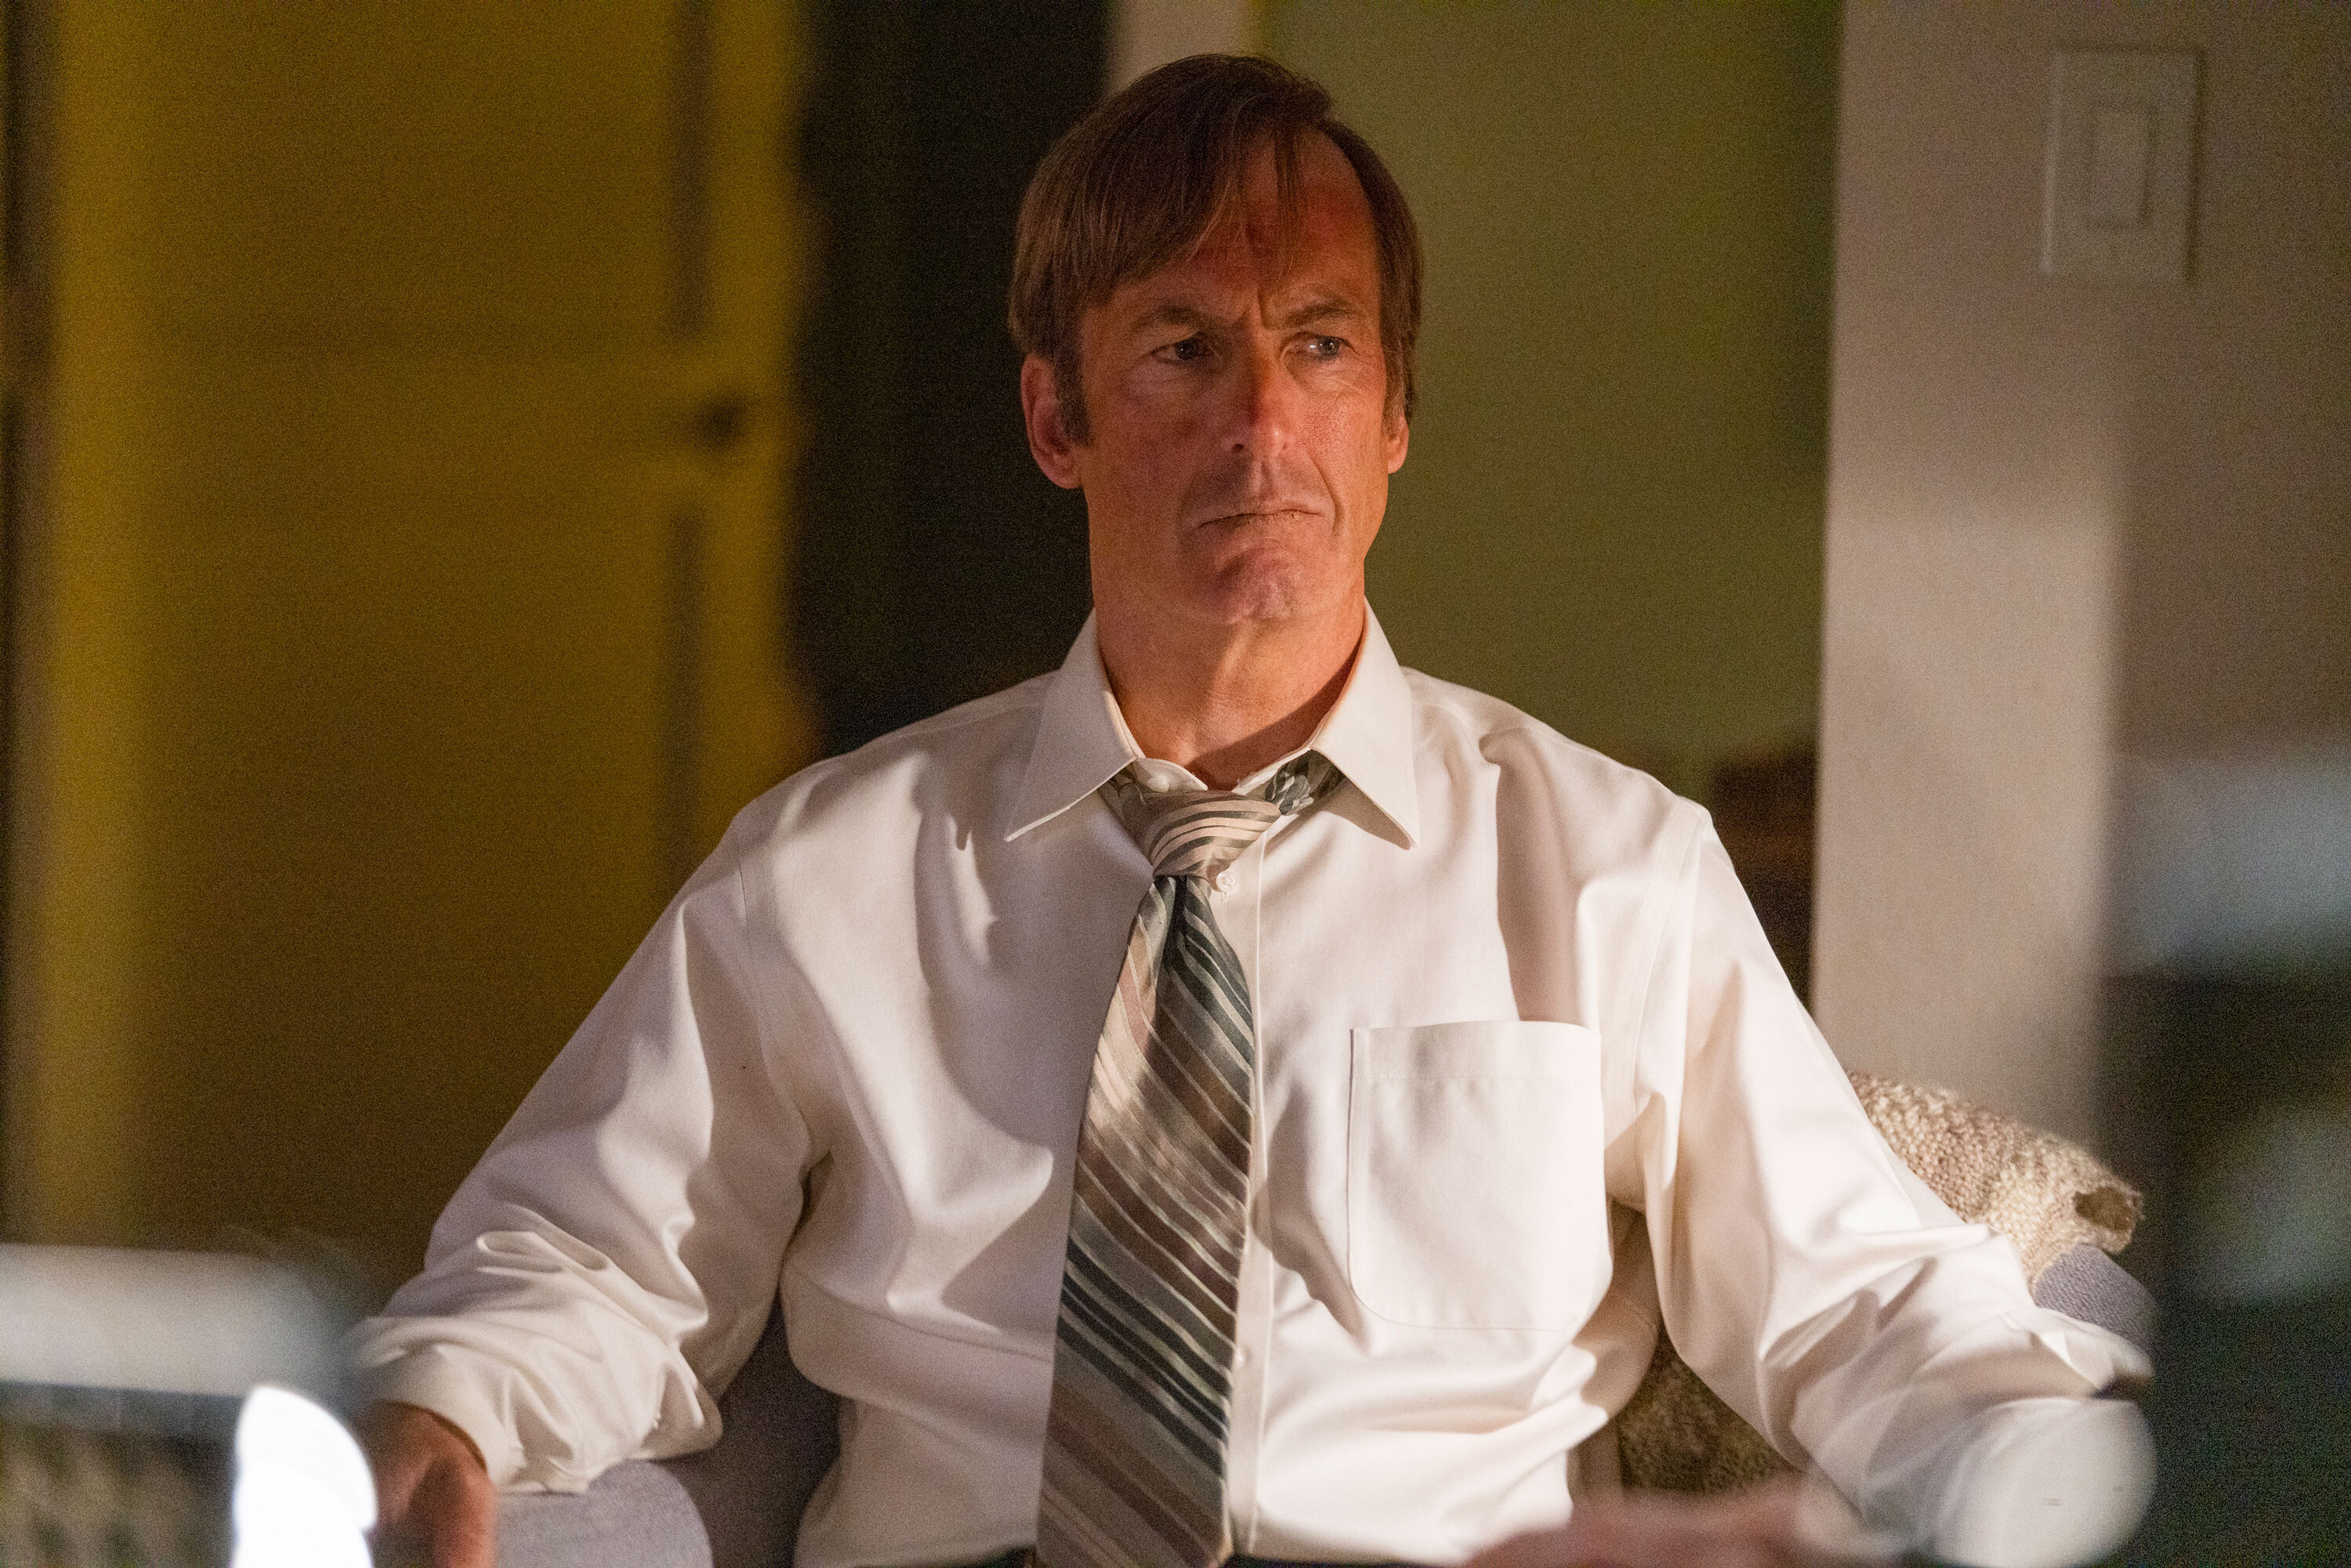 Bob Odenkirk back to work on 'Better Call Saul' after health scare